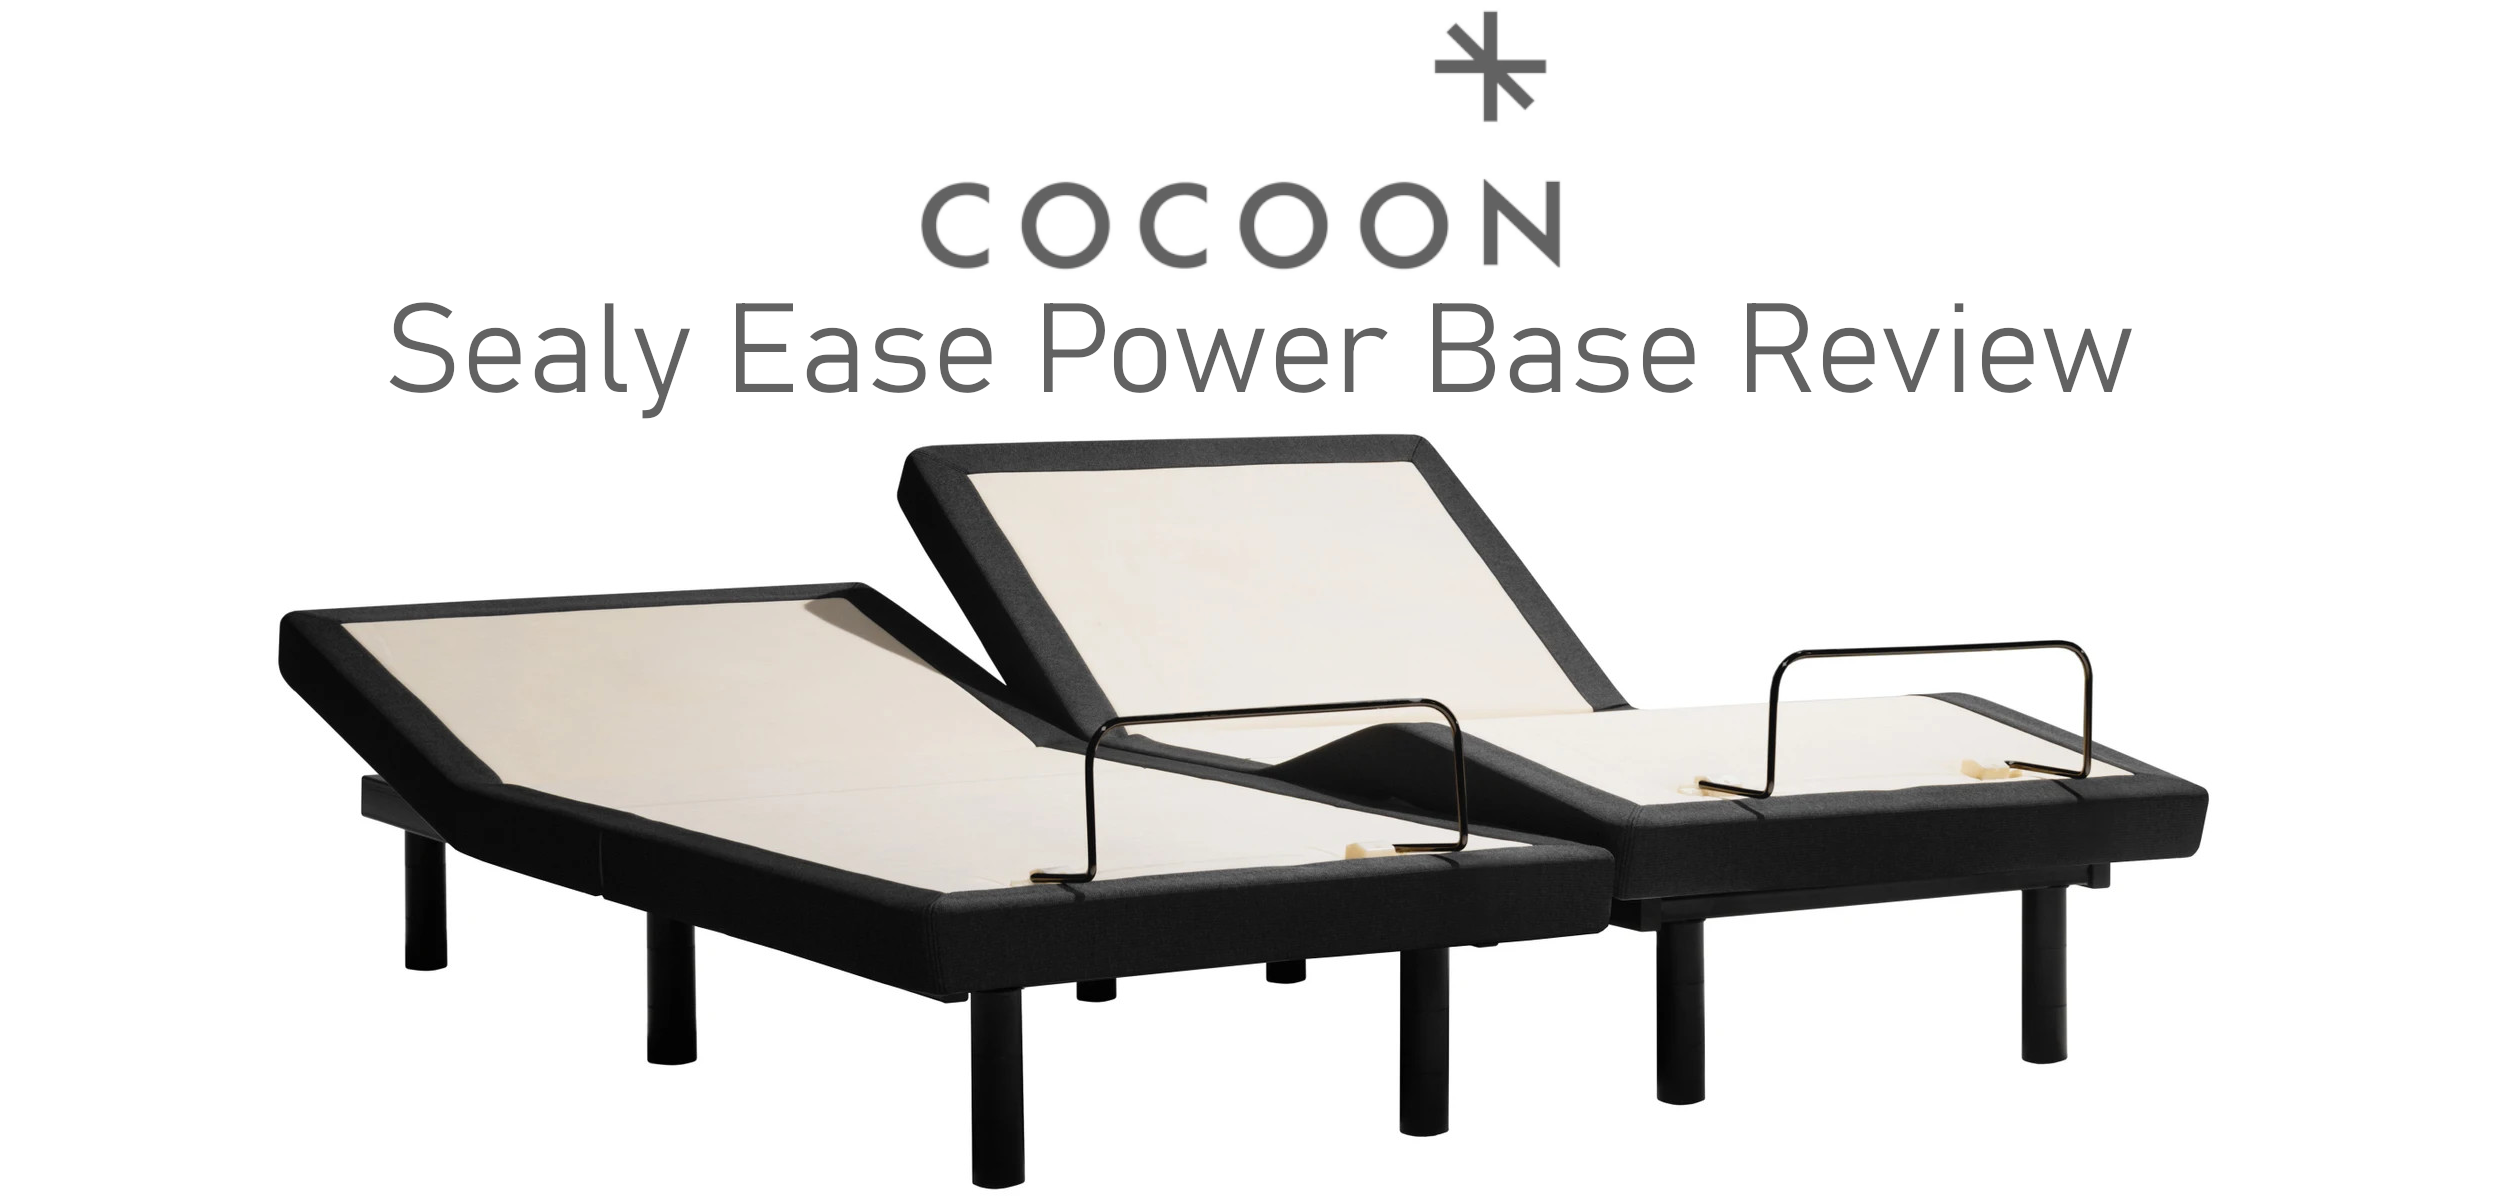 sealy cocoon ease power base review